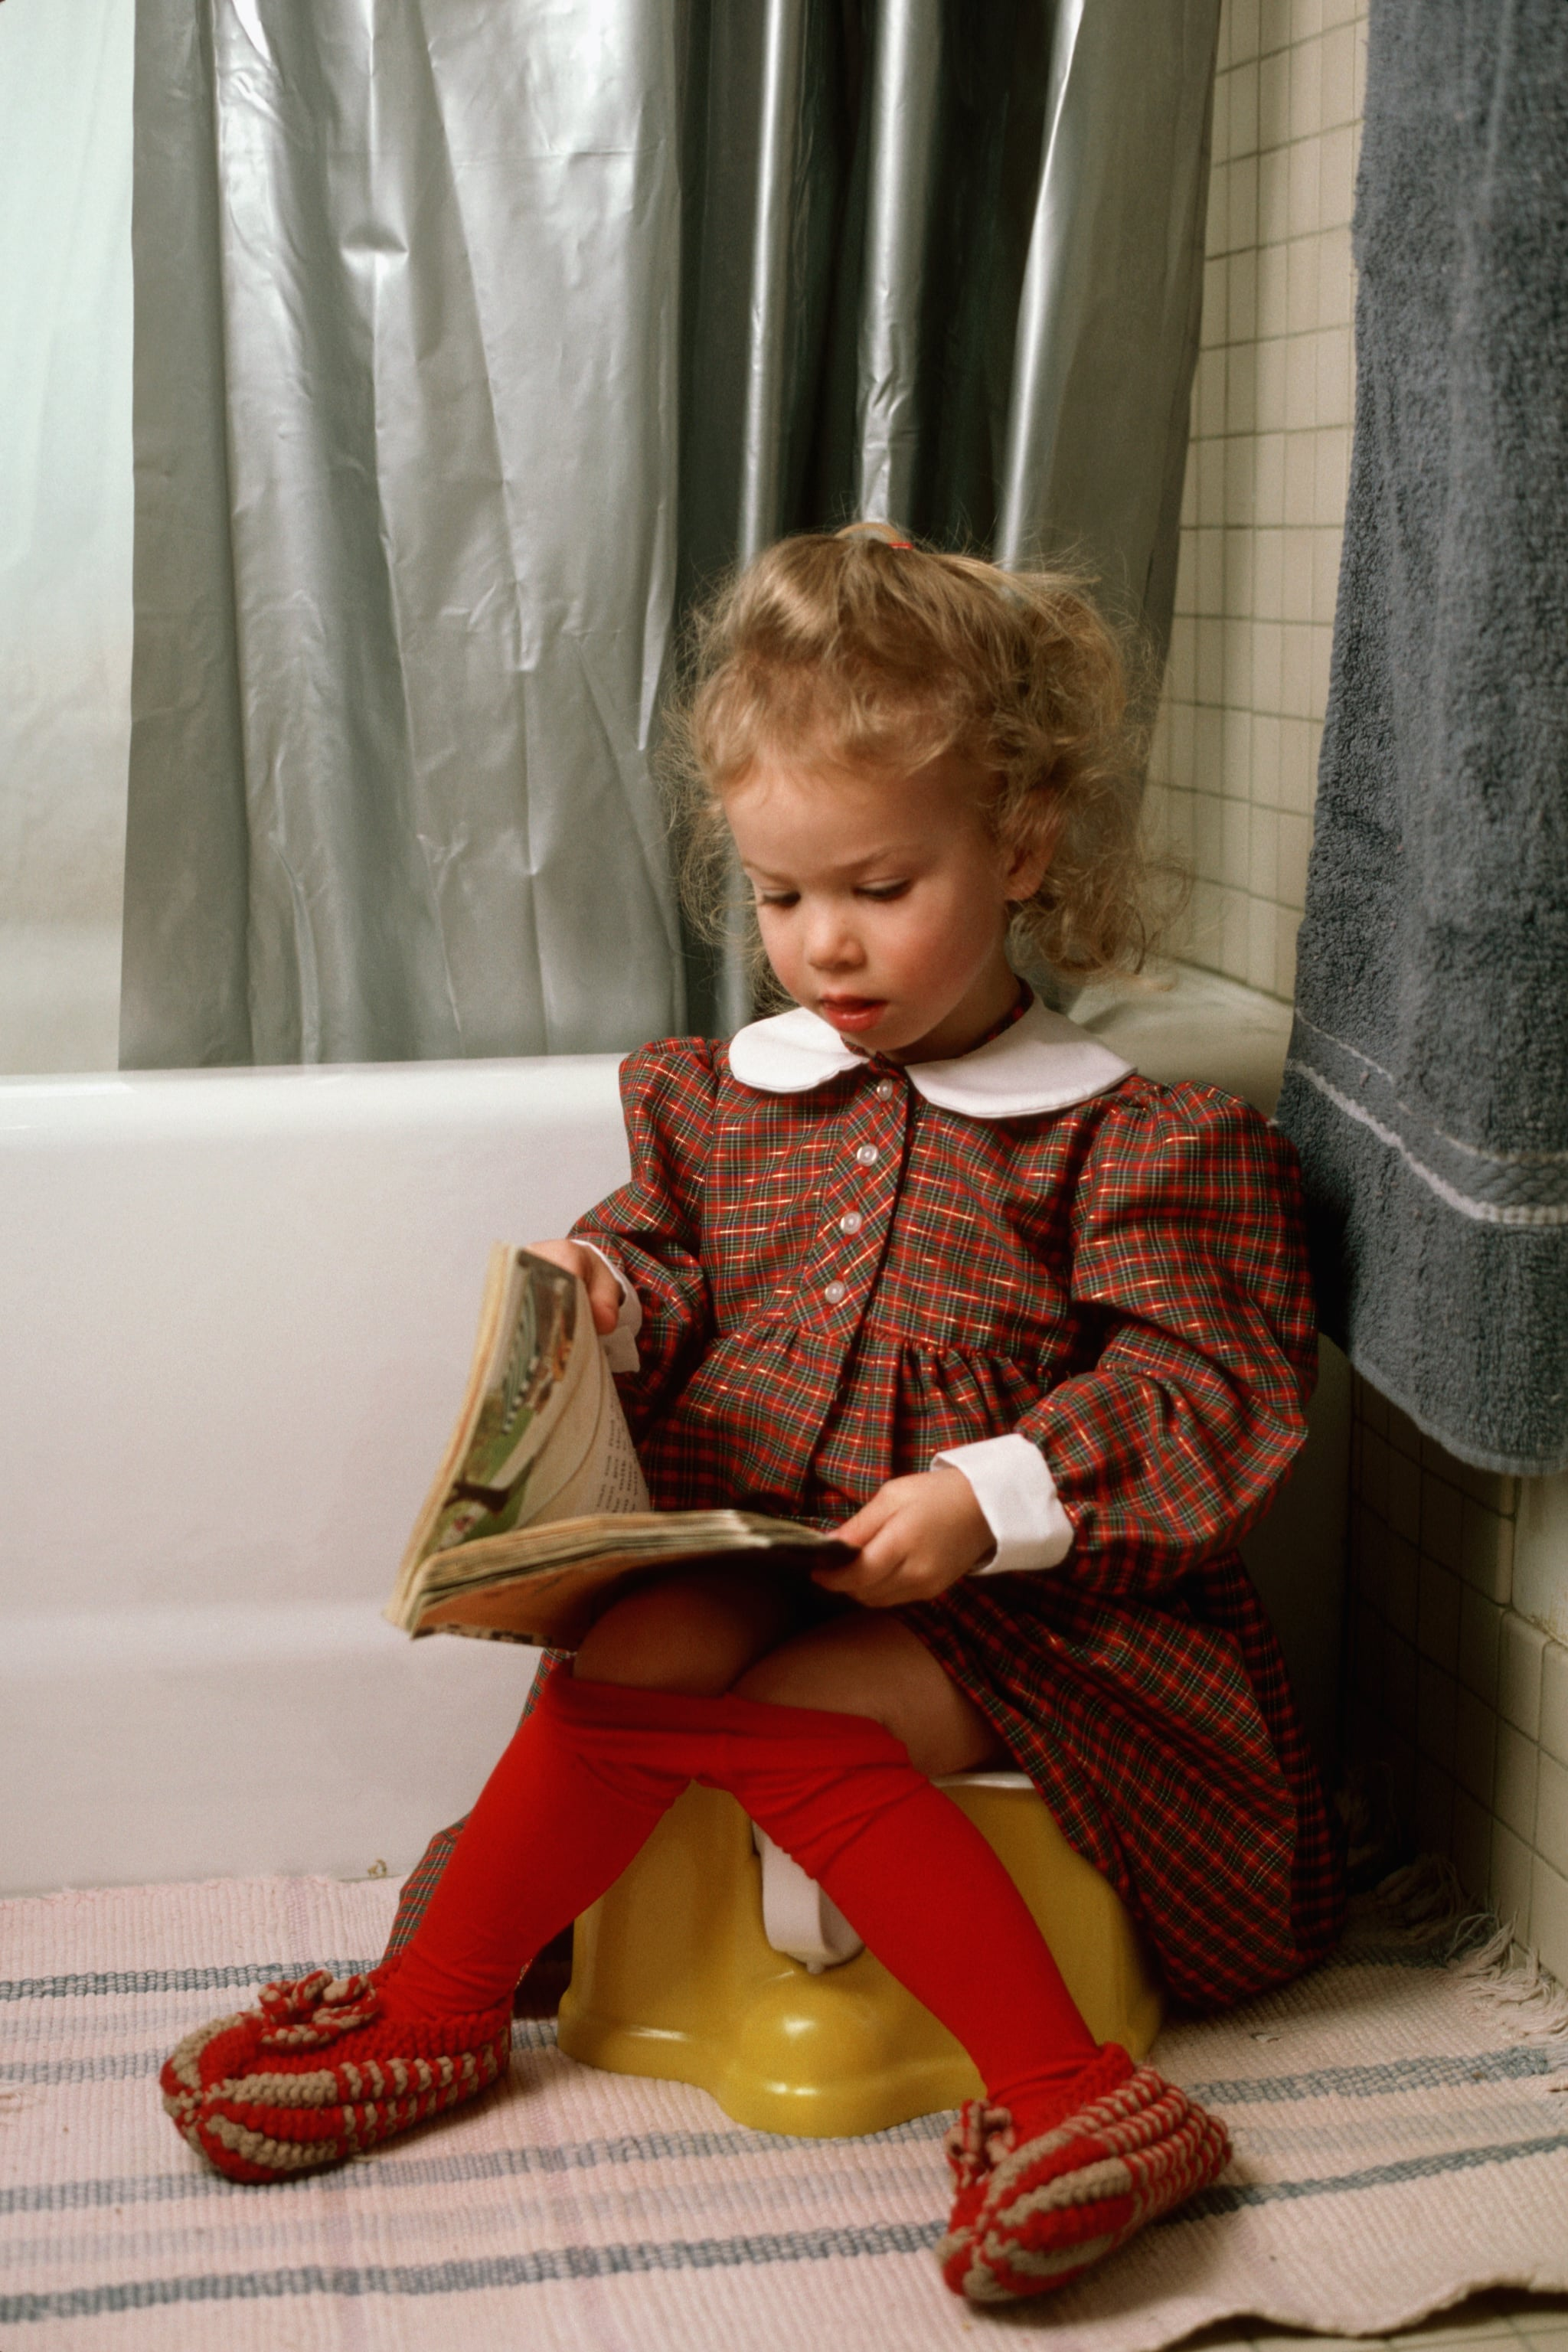 2 year-old girl sitting on training potty seat. (Photo by James Marshall/Corbis via Getty Images)